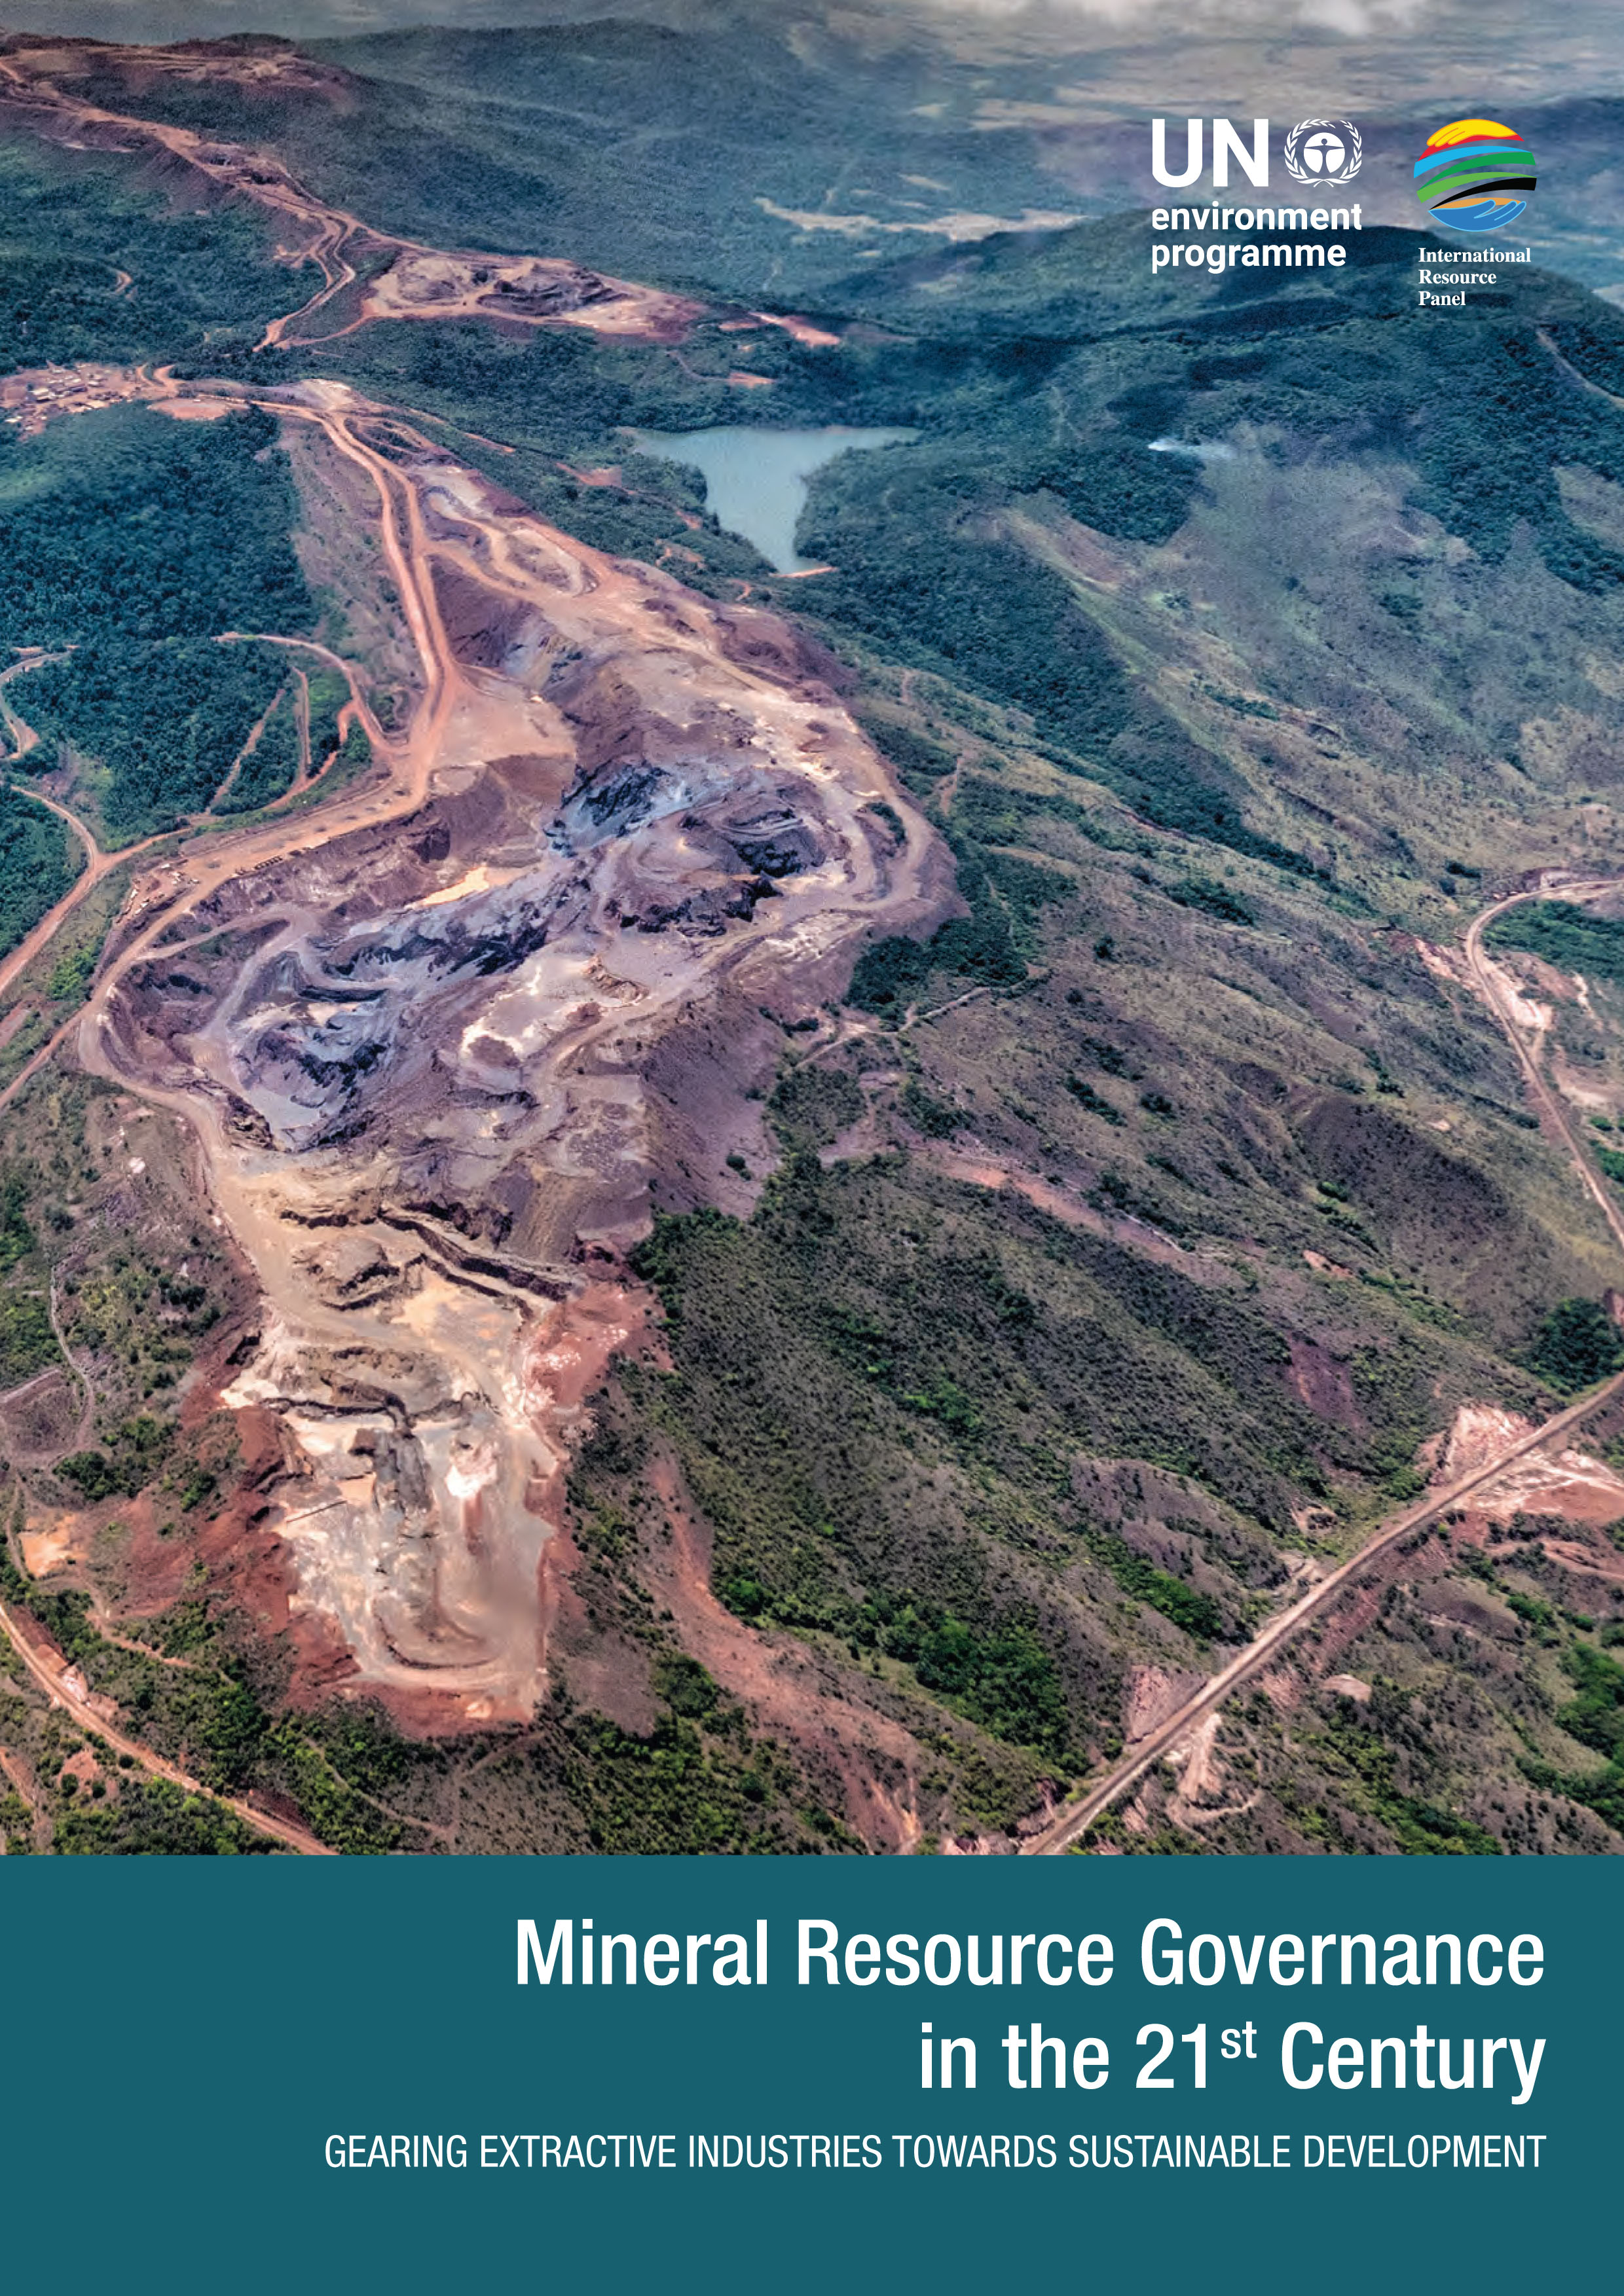 MINERAL RESOURCE GOVERNANCE 21ST C